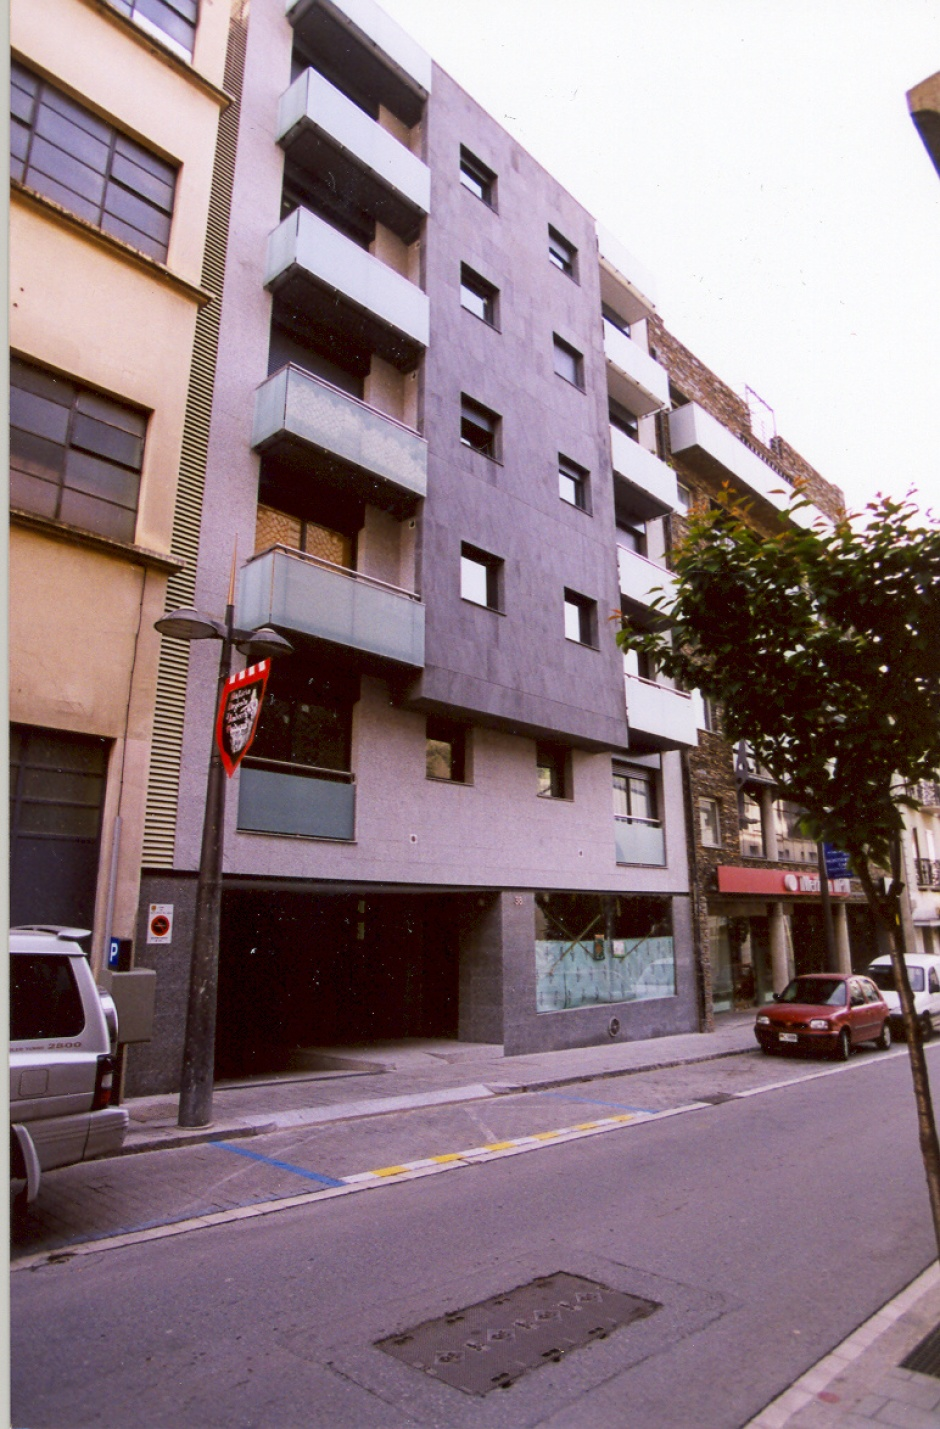 Residential building on Av. Virgin of Canòlich, 38, Architecture (Principality of Andorra)